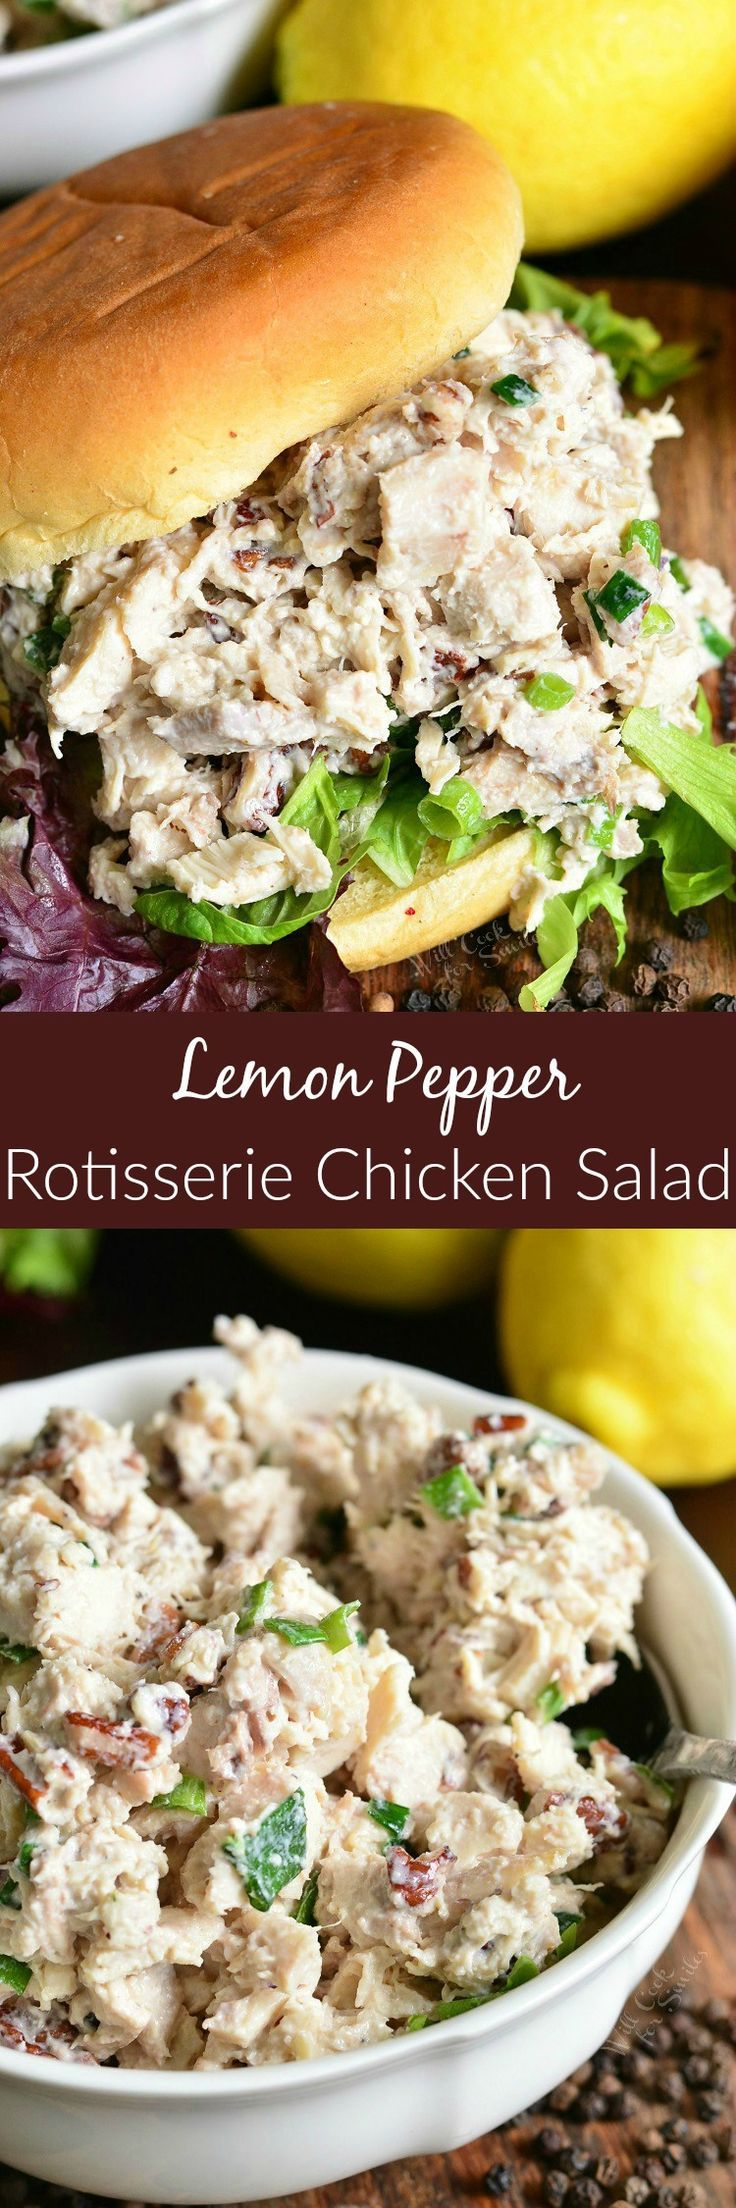 Lemon Pepper Rotisserie Chicken Salad. Delicious and tender chicken salad made with a pop of pecans, lemon pepper seasoning, green onions and lemon!